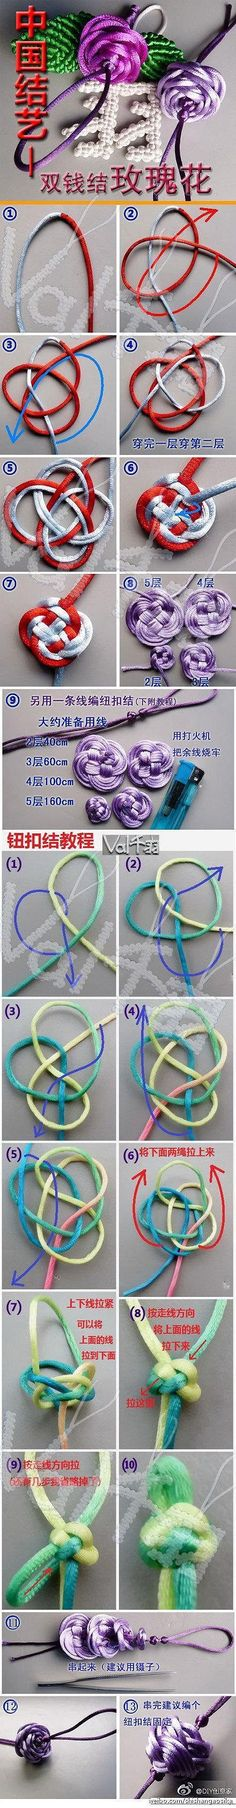 Special knots using heavy string or cord